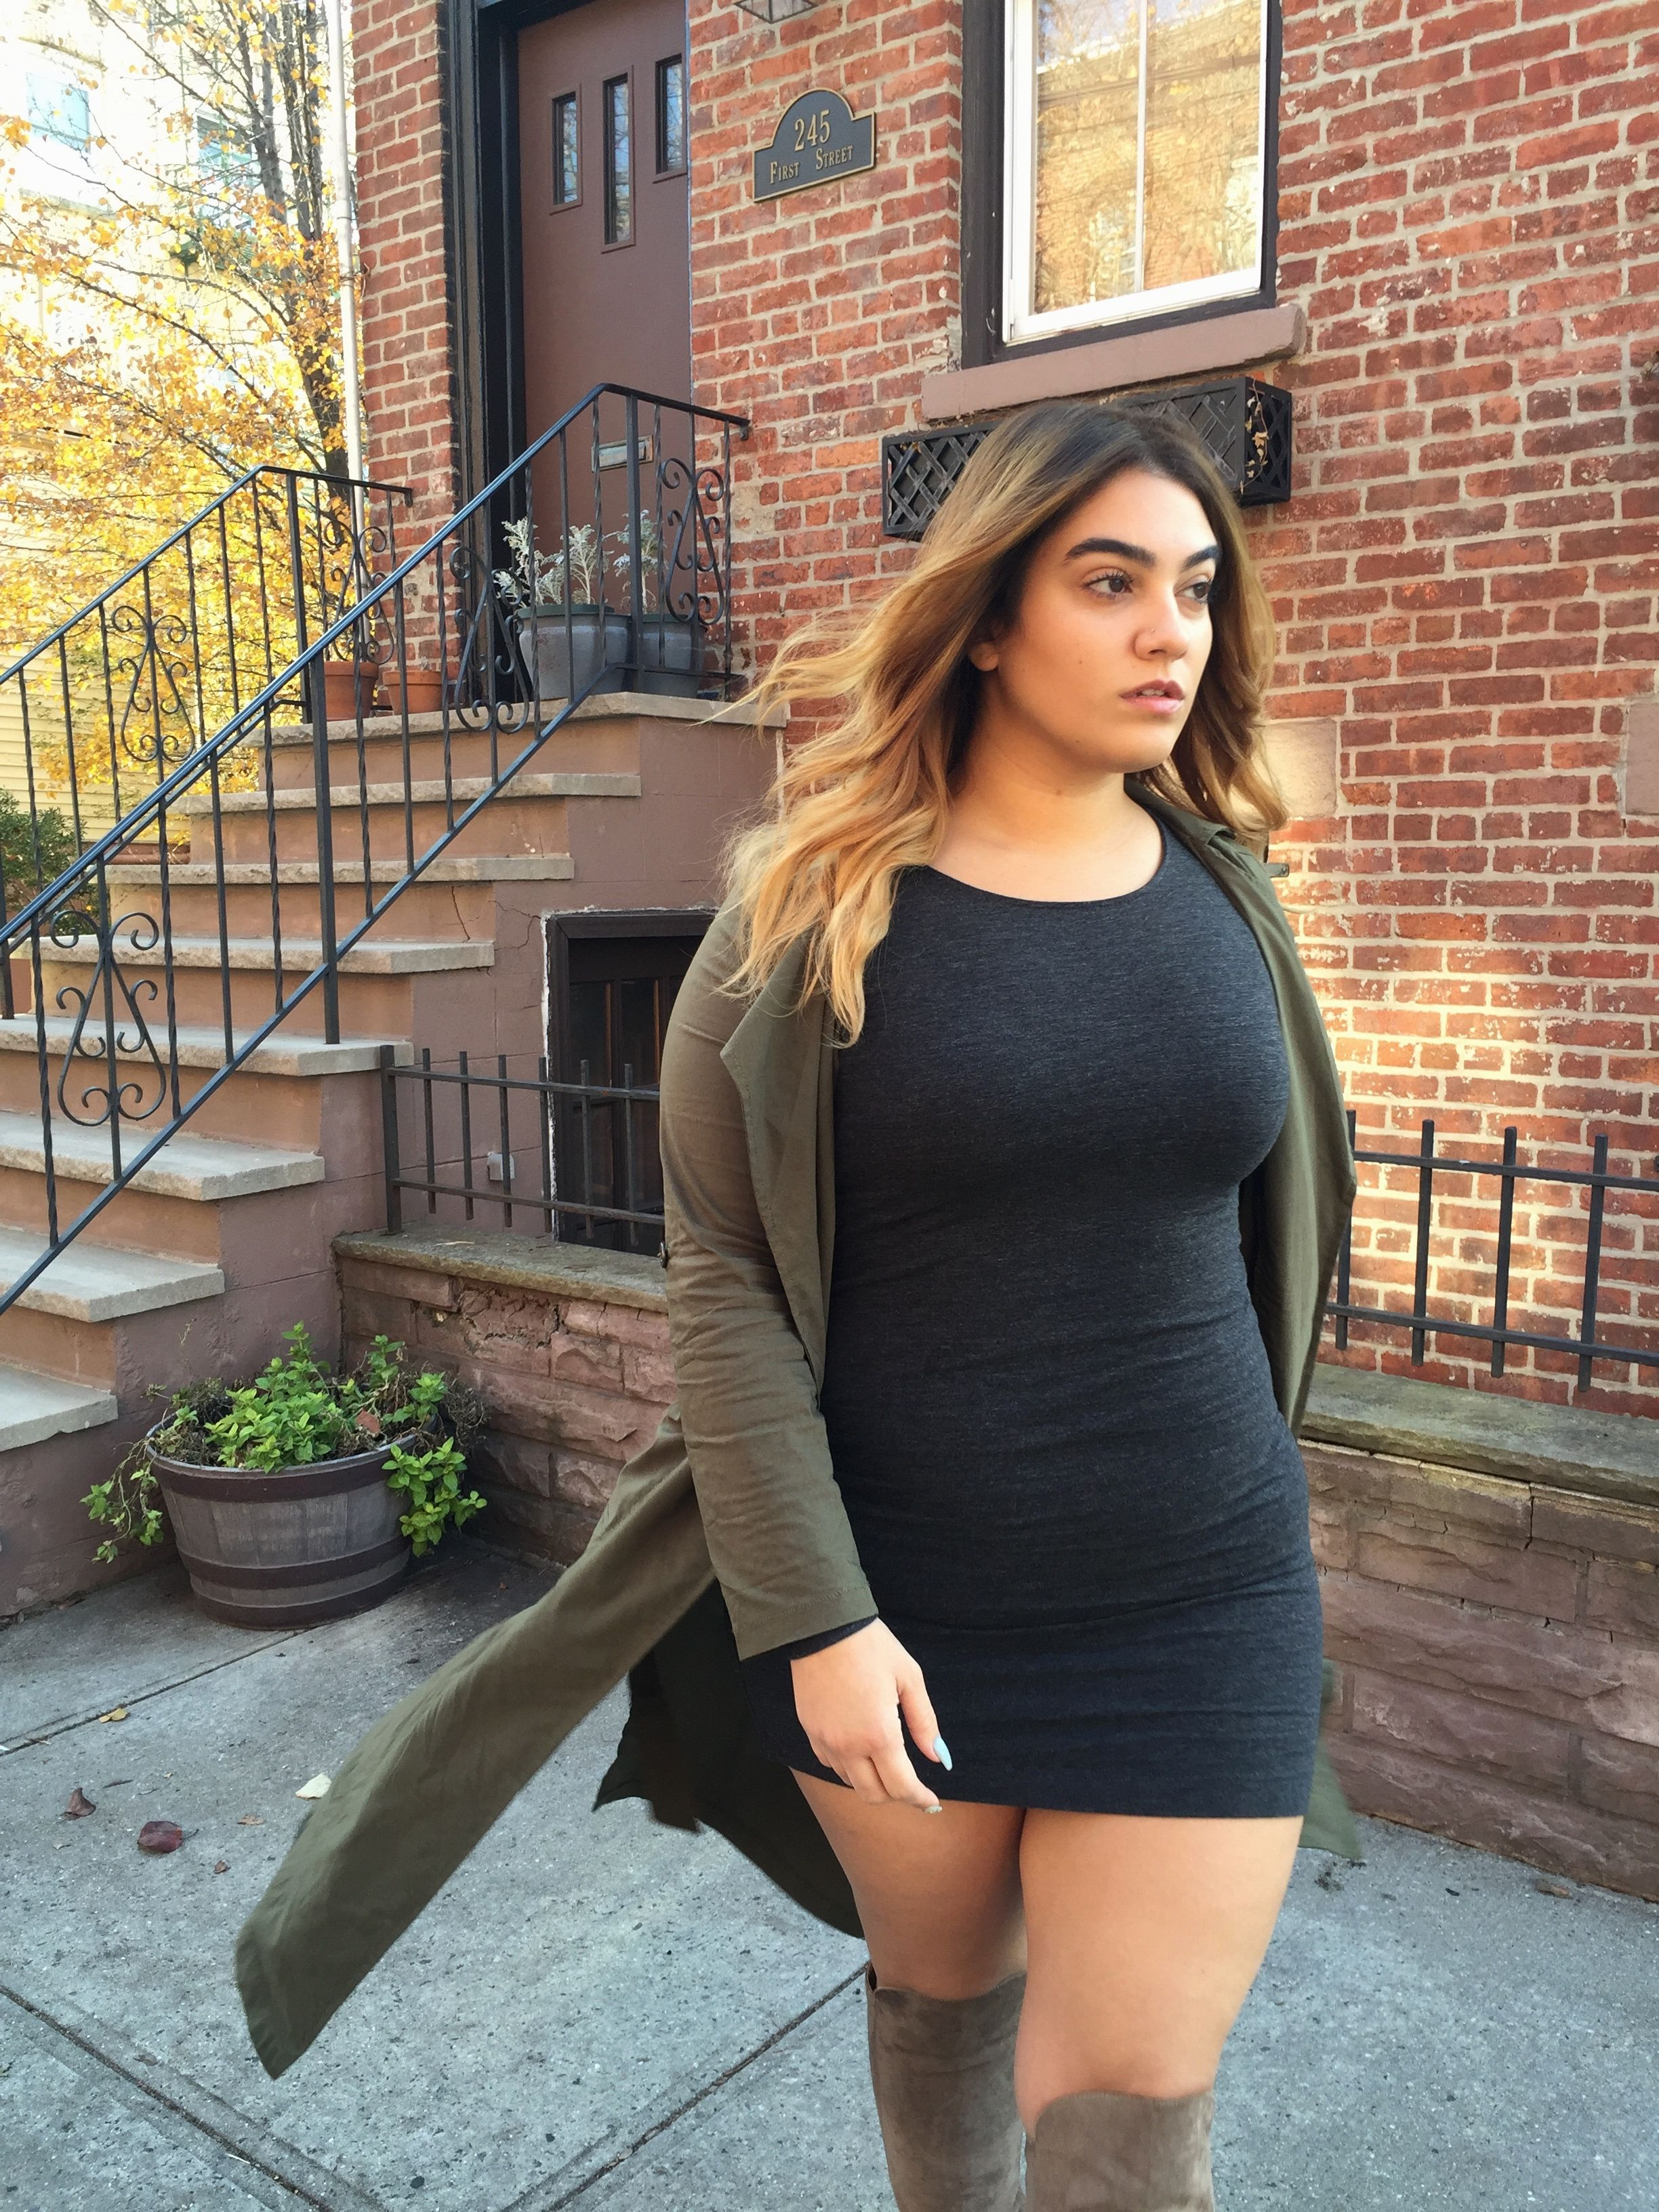 single bbw women in lawrence Meet cute big and beautiful singles in your area with our free bbw dating service loads of single bbw women browse thousands of bbw personal ads and bbw singles.